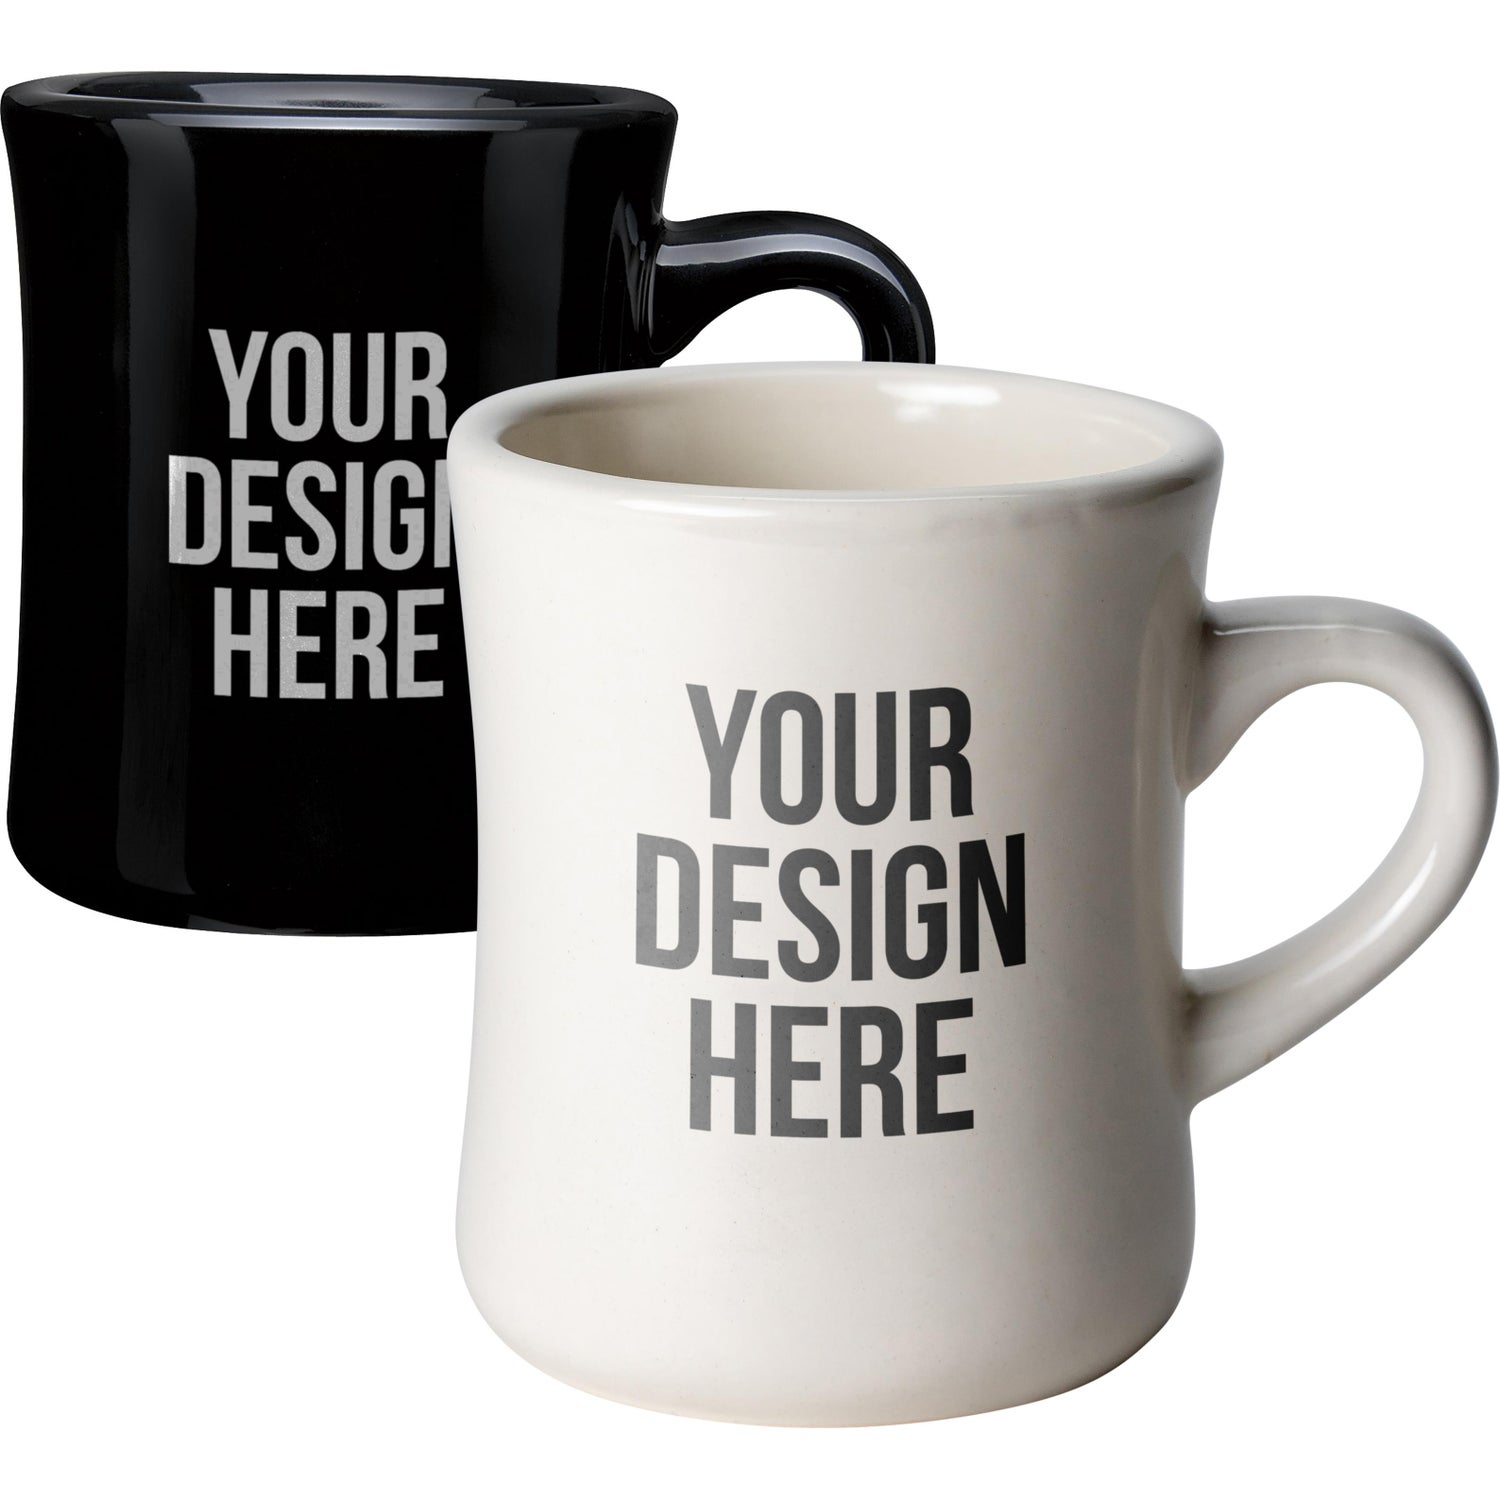 Click Here To Order 12 Oz Cuppajo Diner Mugs Printed With